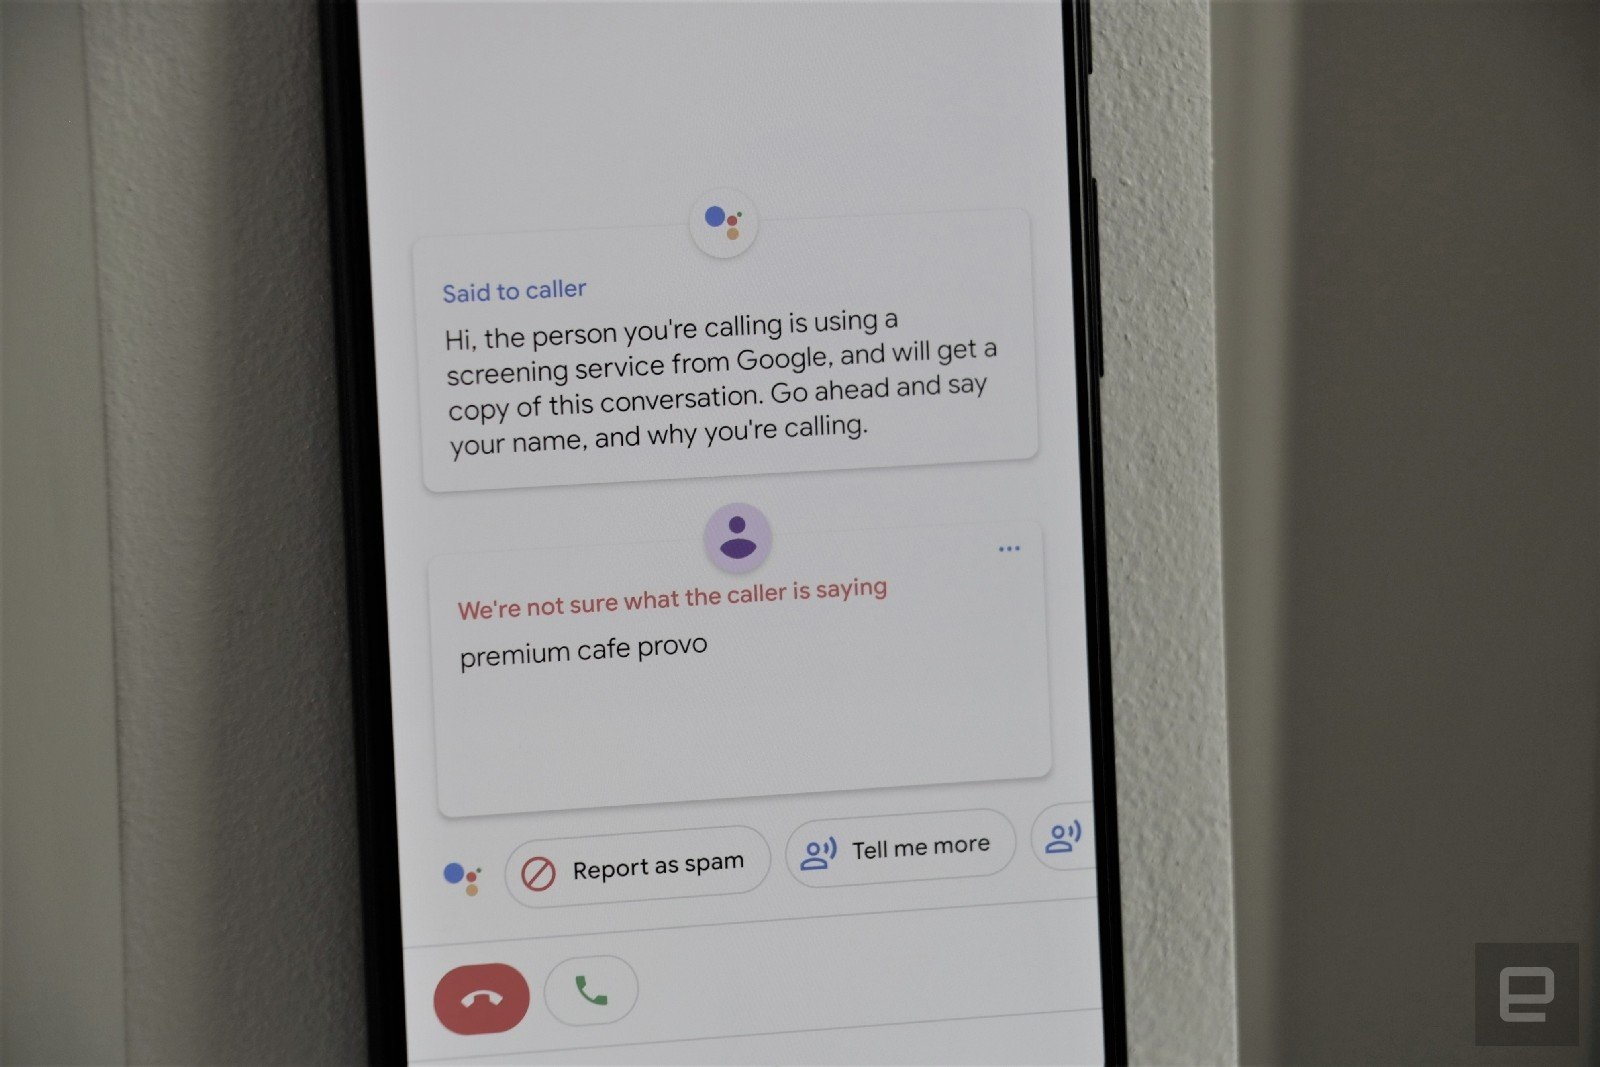 Google's call screening transcripts roll out to Pixel owners | DeviceDaily.com